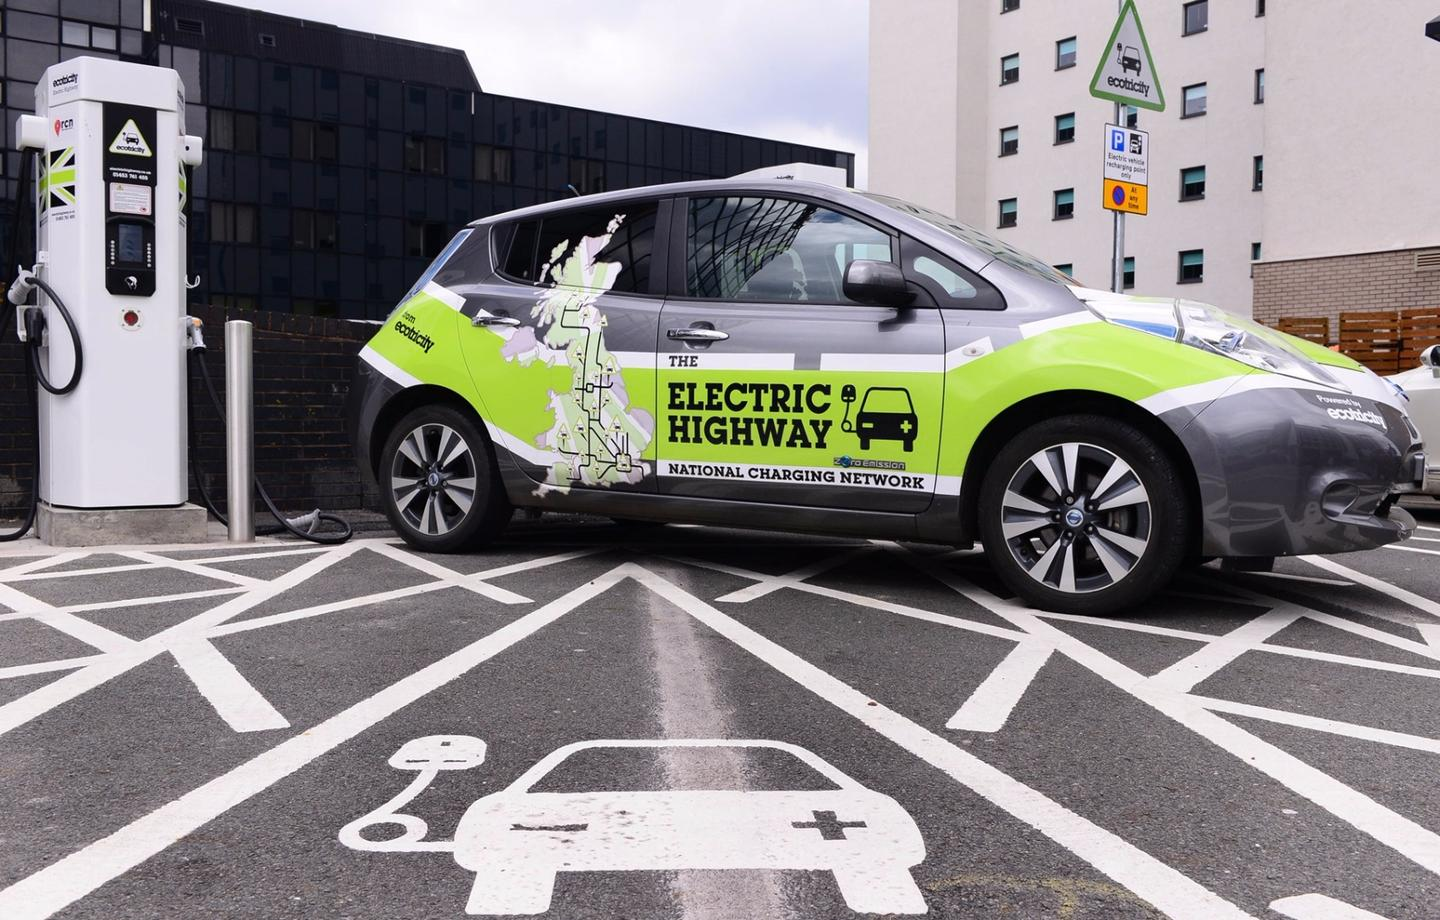 Ecotricity'sElectric Highway is moving from a free-to-usenetworkto pay-per-charge